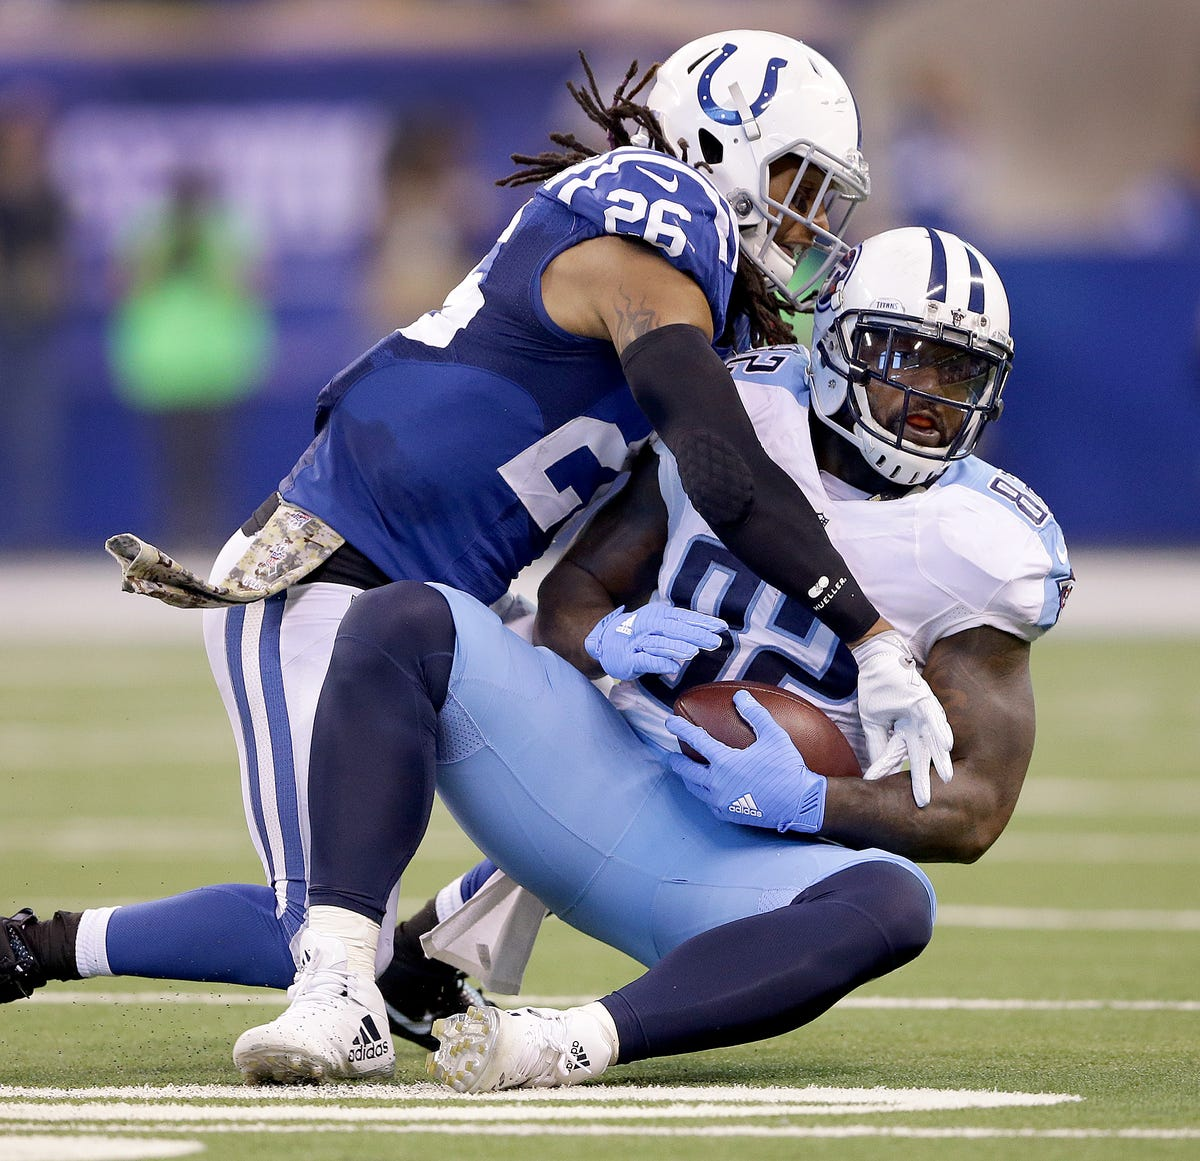 e6dc9fc5 Colts Clayton Geathers: Hard-hitting safety back after 11 long months